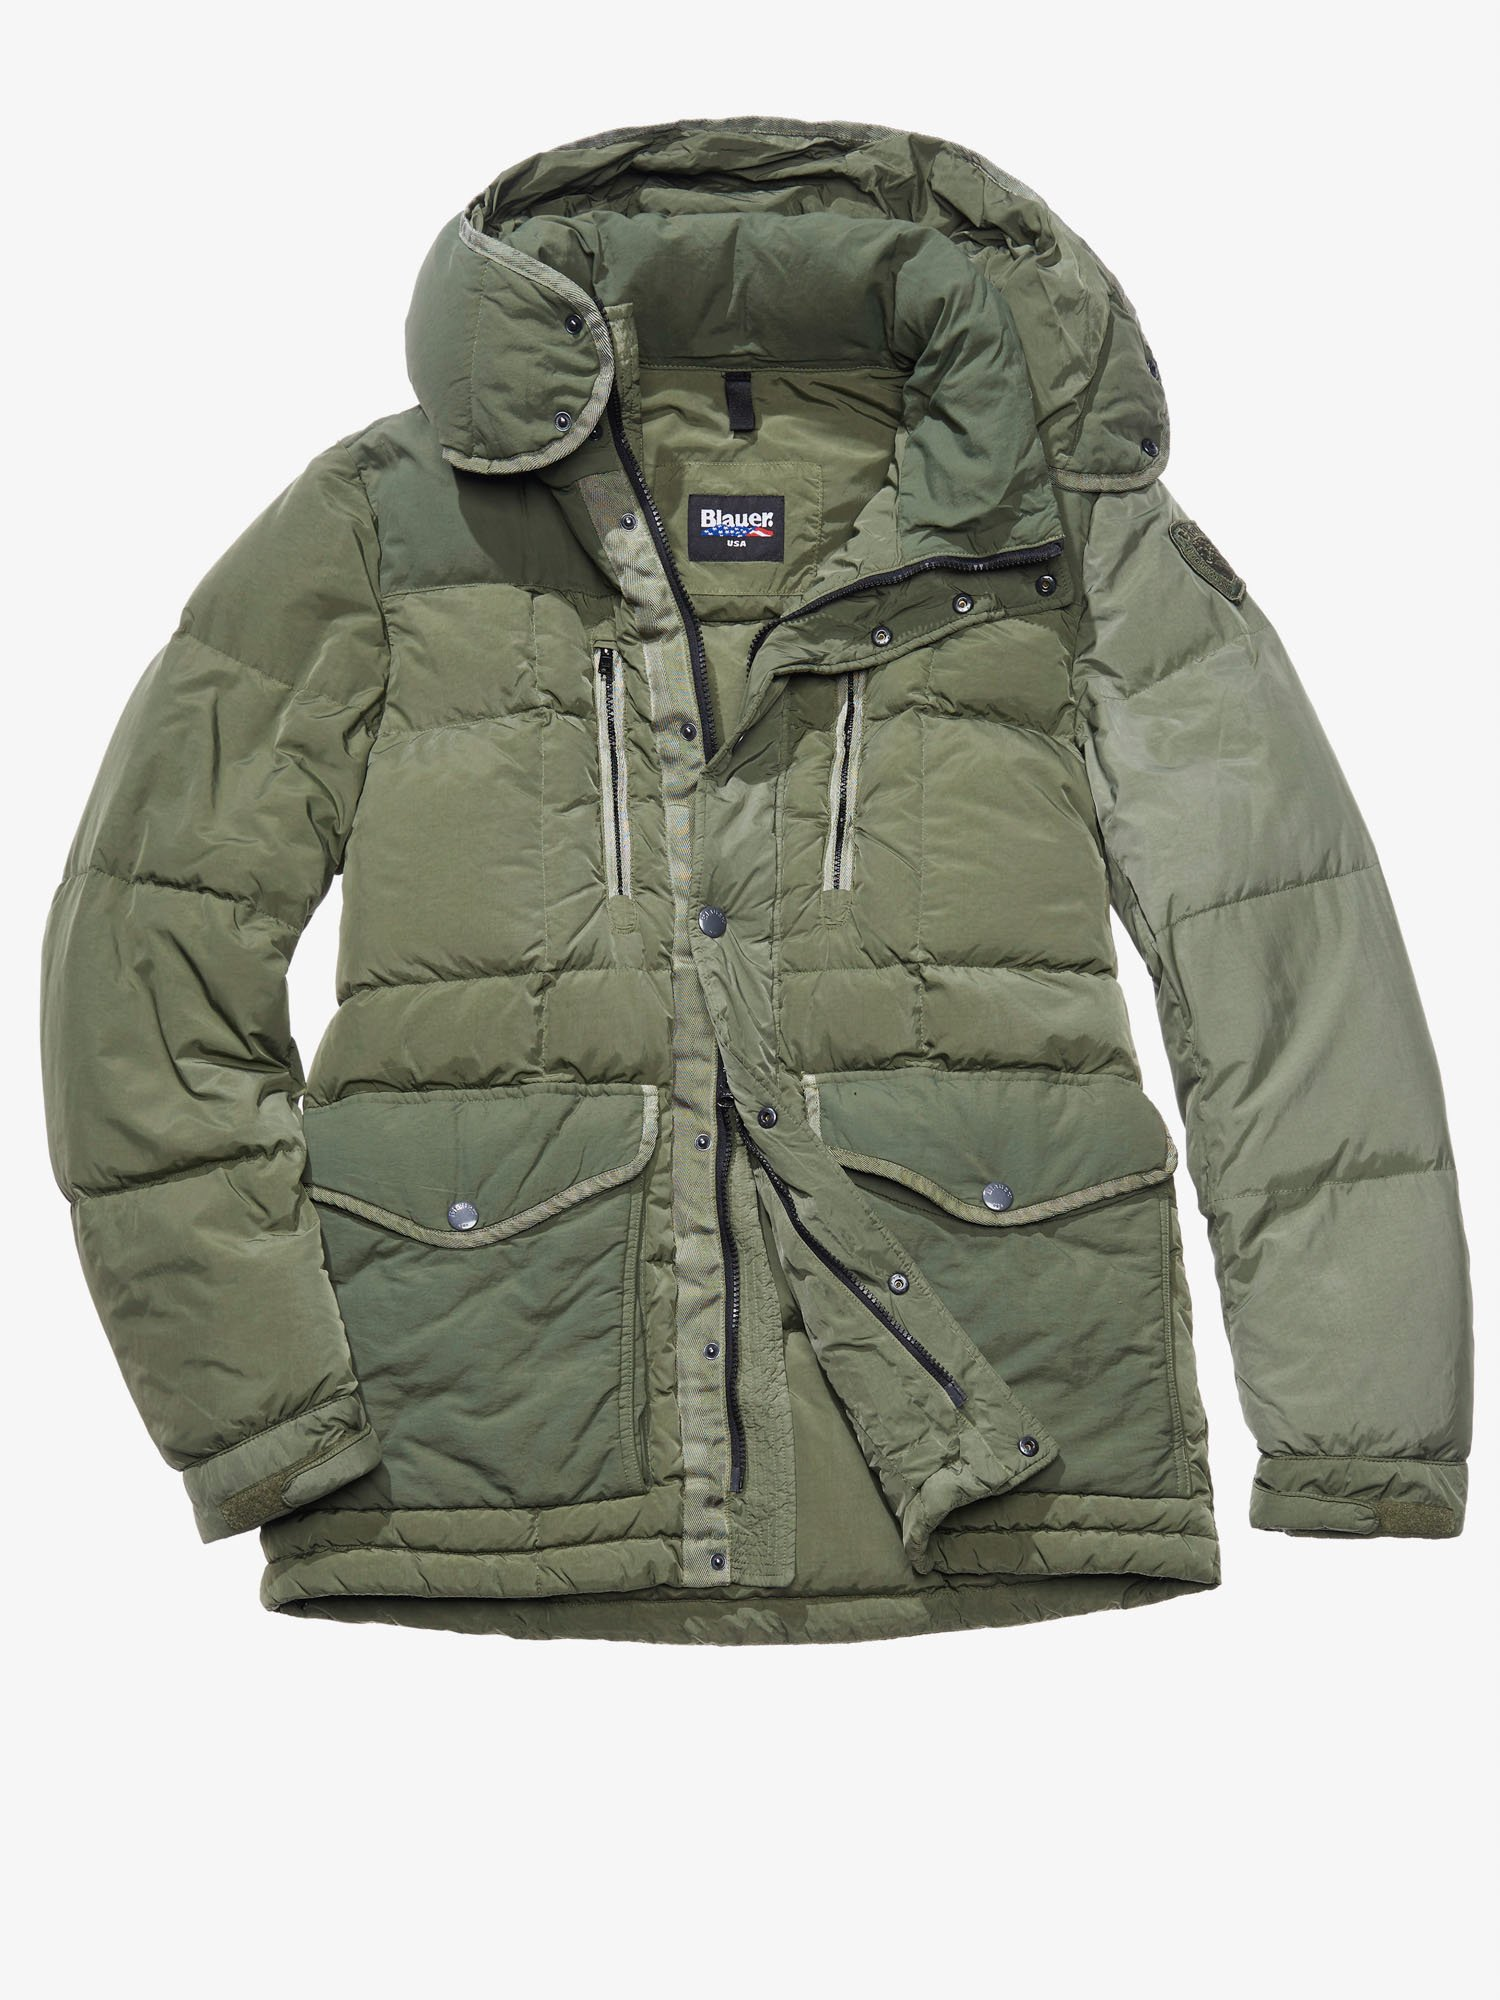 Blauer - FRANCESCO MILITARY-STYLE DOWN COAT - Kombu Algae - 1 ... 6470af5dd2fb